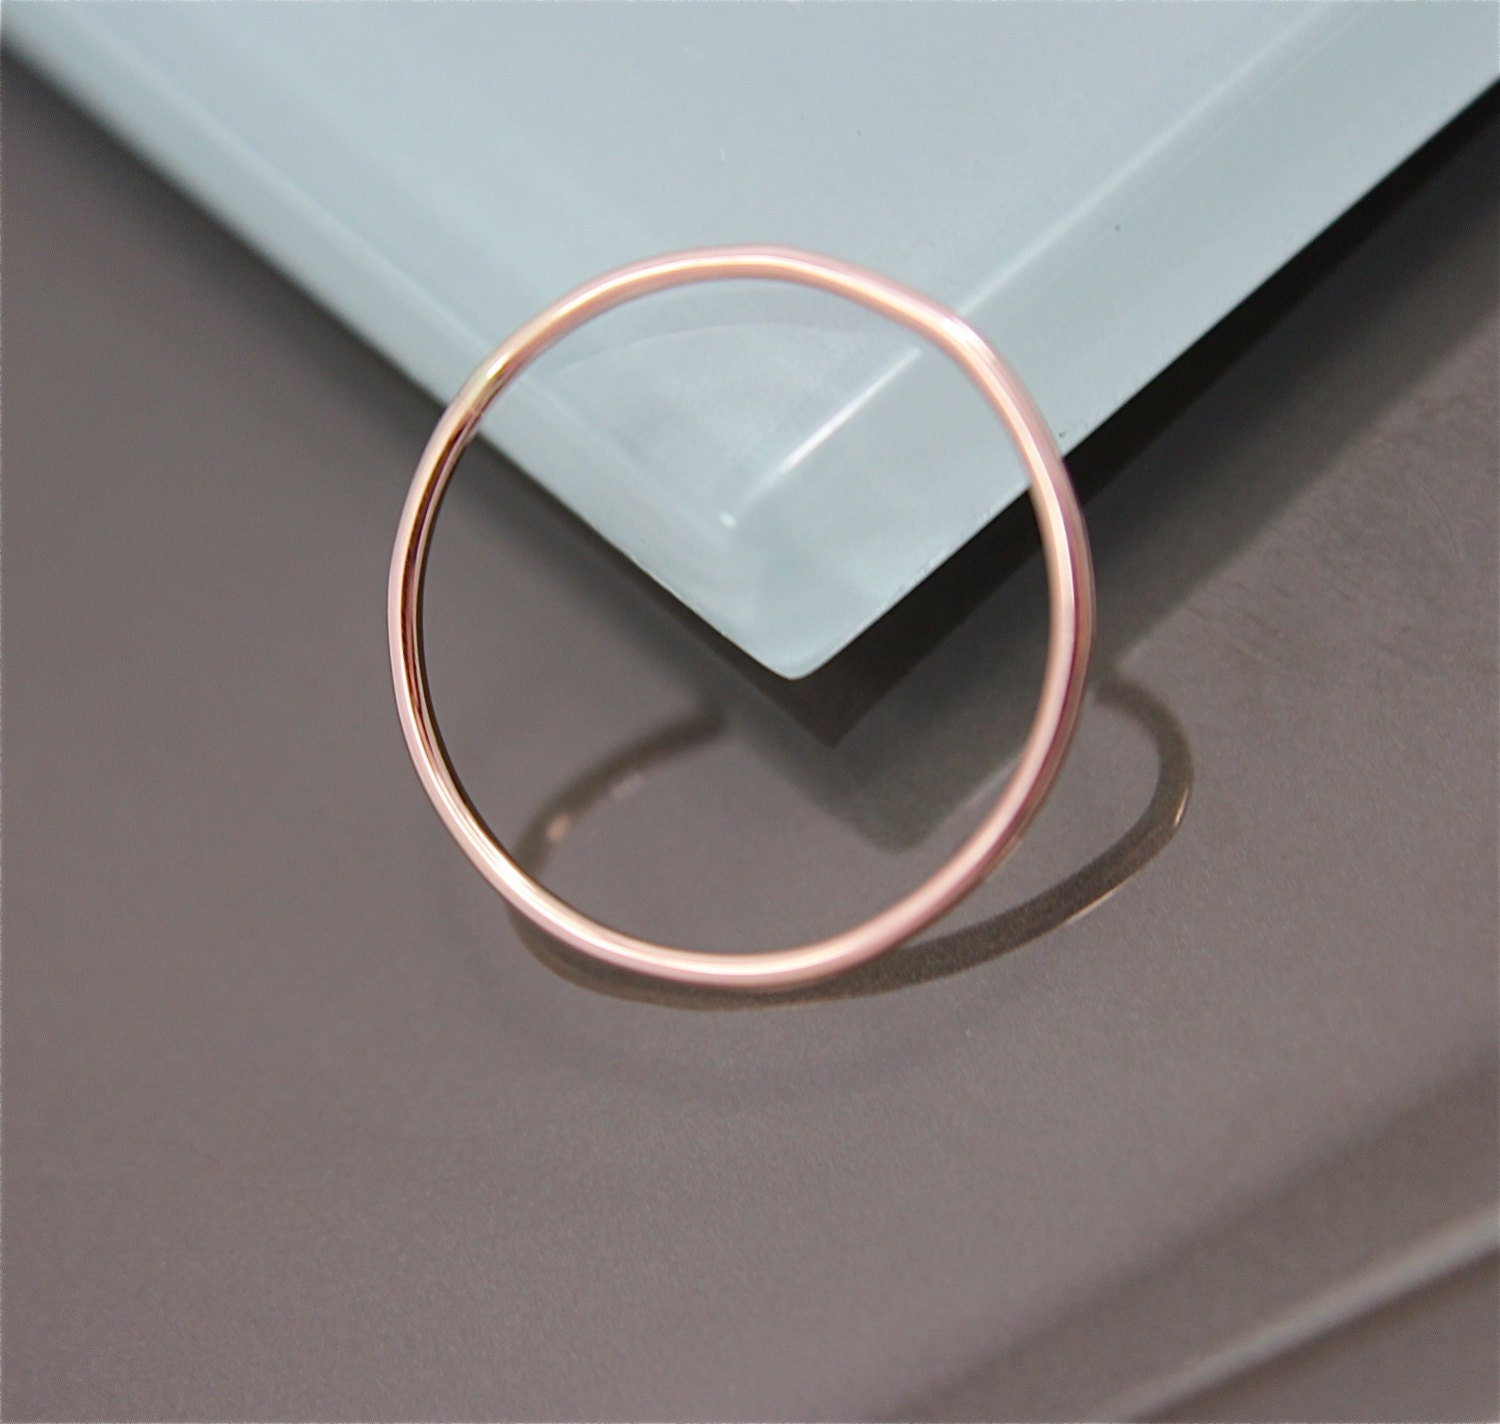 Rose Gold Ring 14k SOLID 1mm Thin Round Skinny Simple Stacking Band Spacer Ring Shiny Finish Eco-friendly Recycled Gold